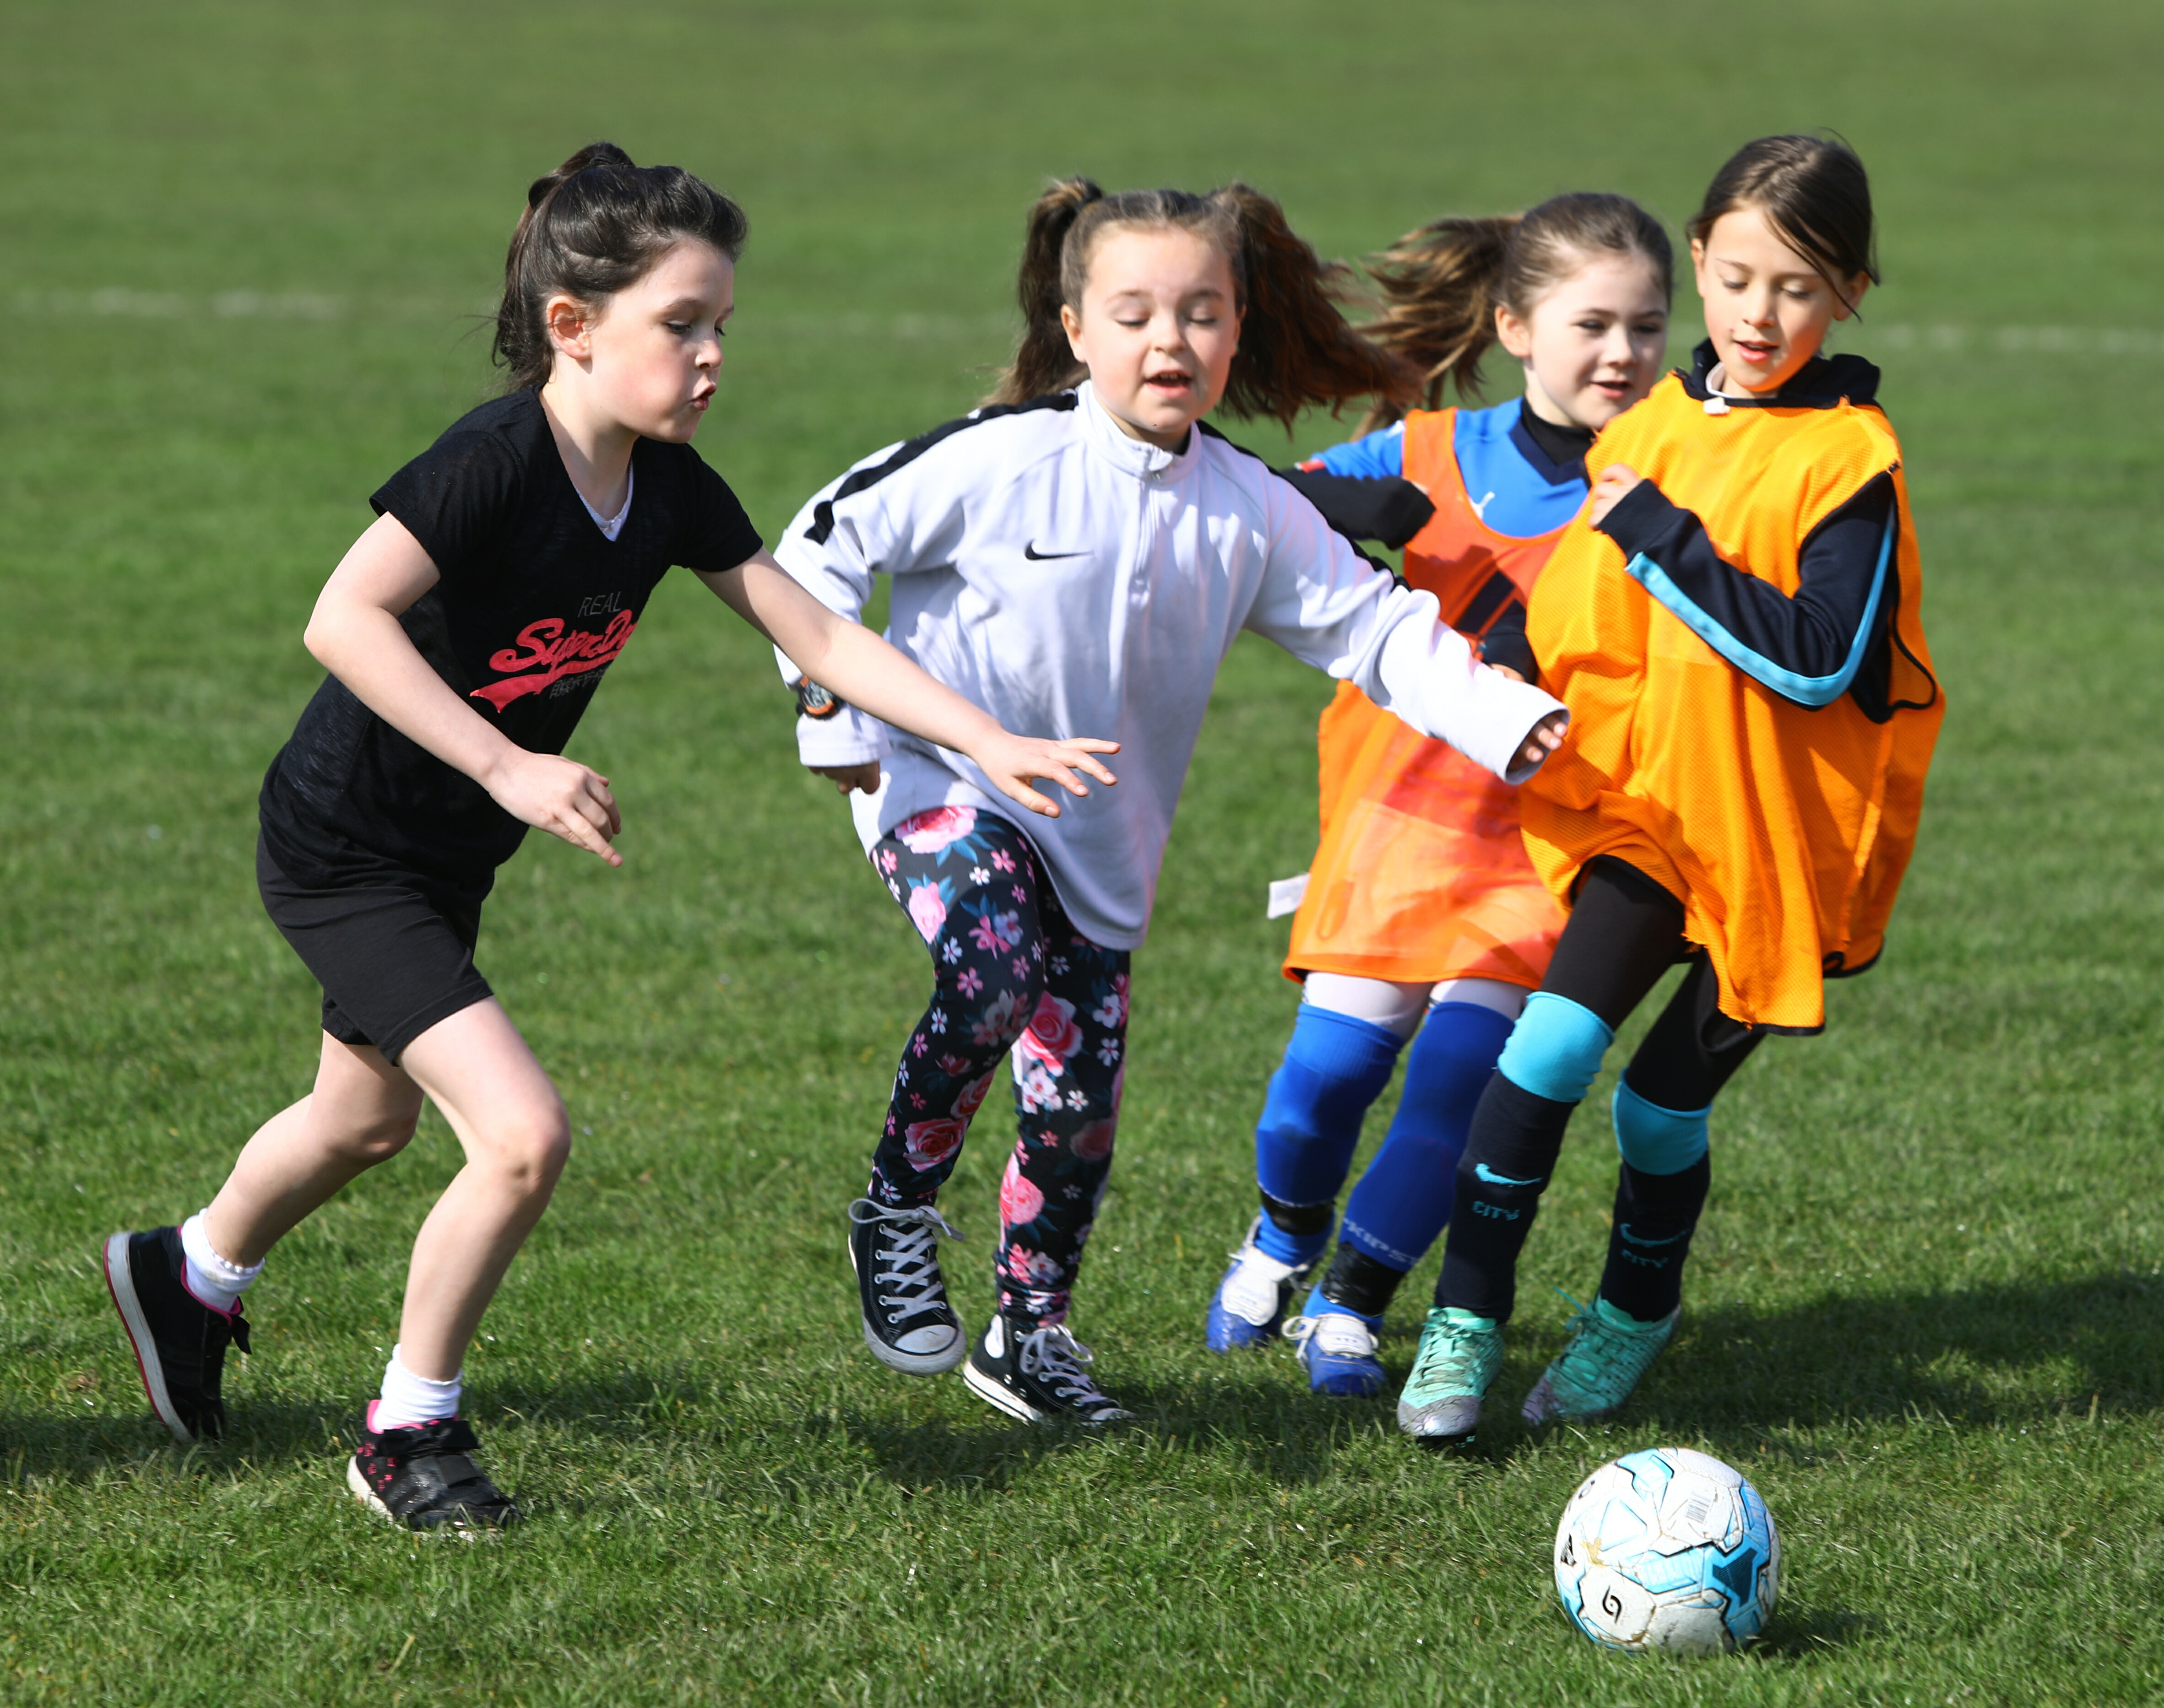 Dundee West hope to increase engagement in football among young girls.